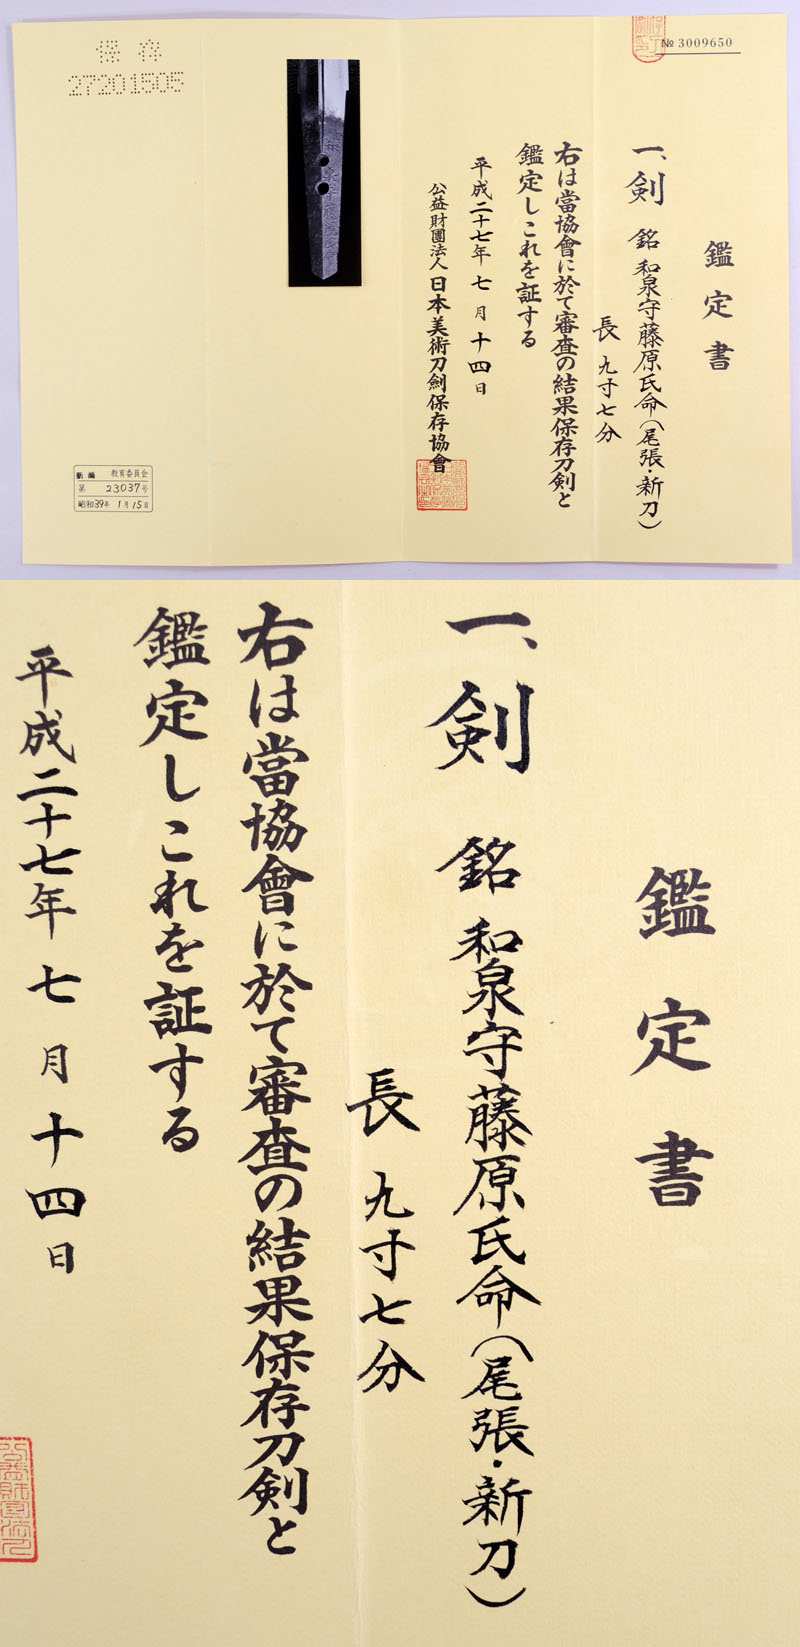 和泉守藤原氏命 Picture of Certificate